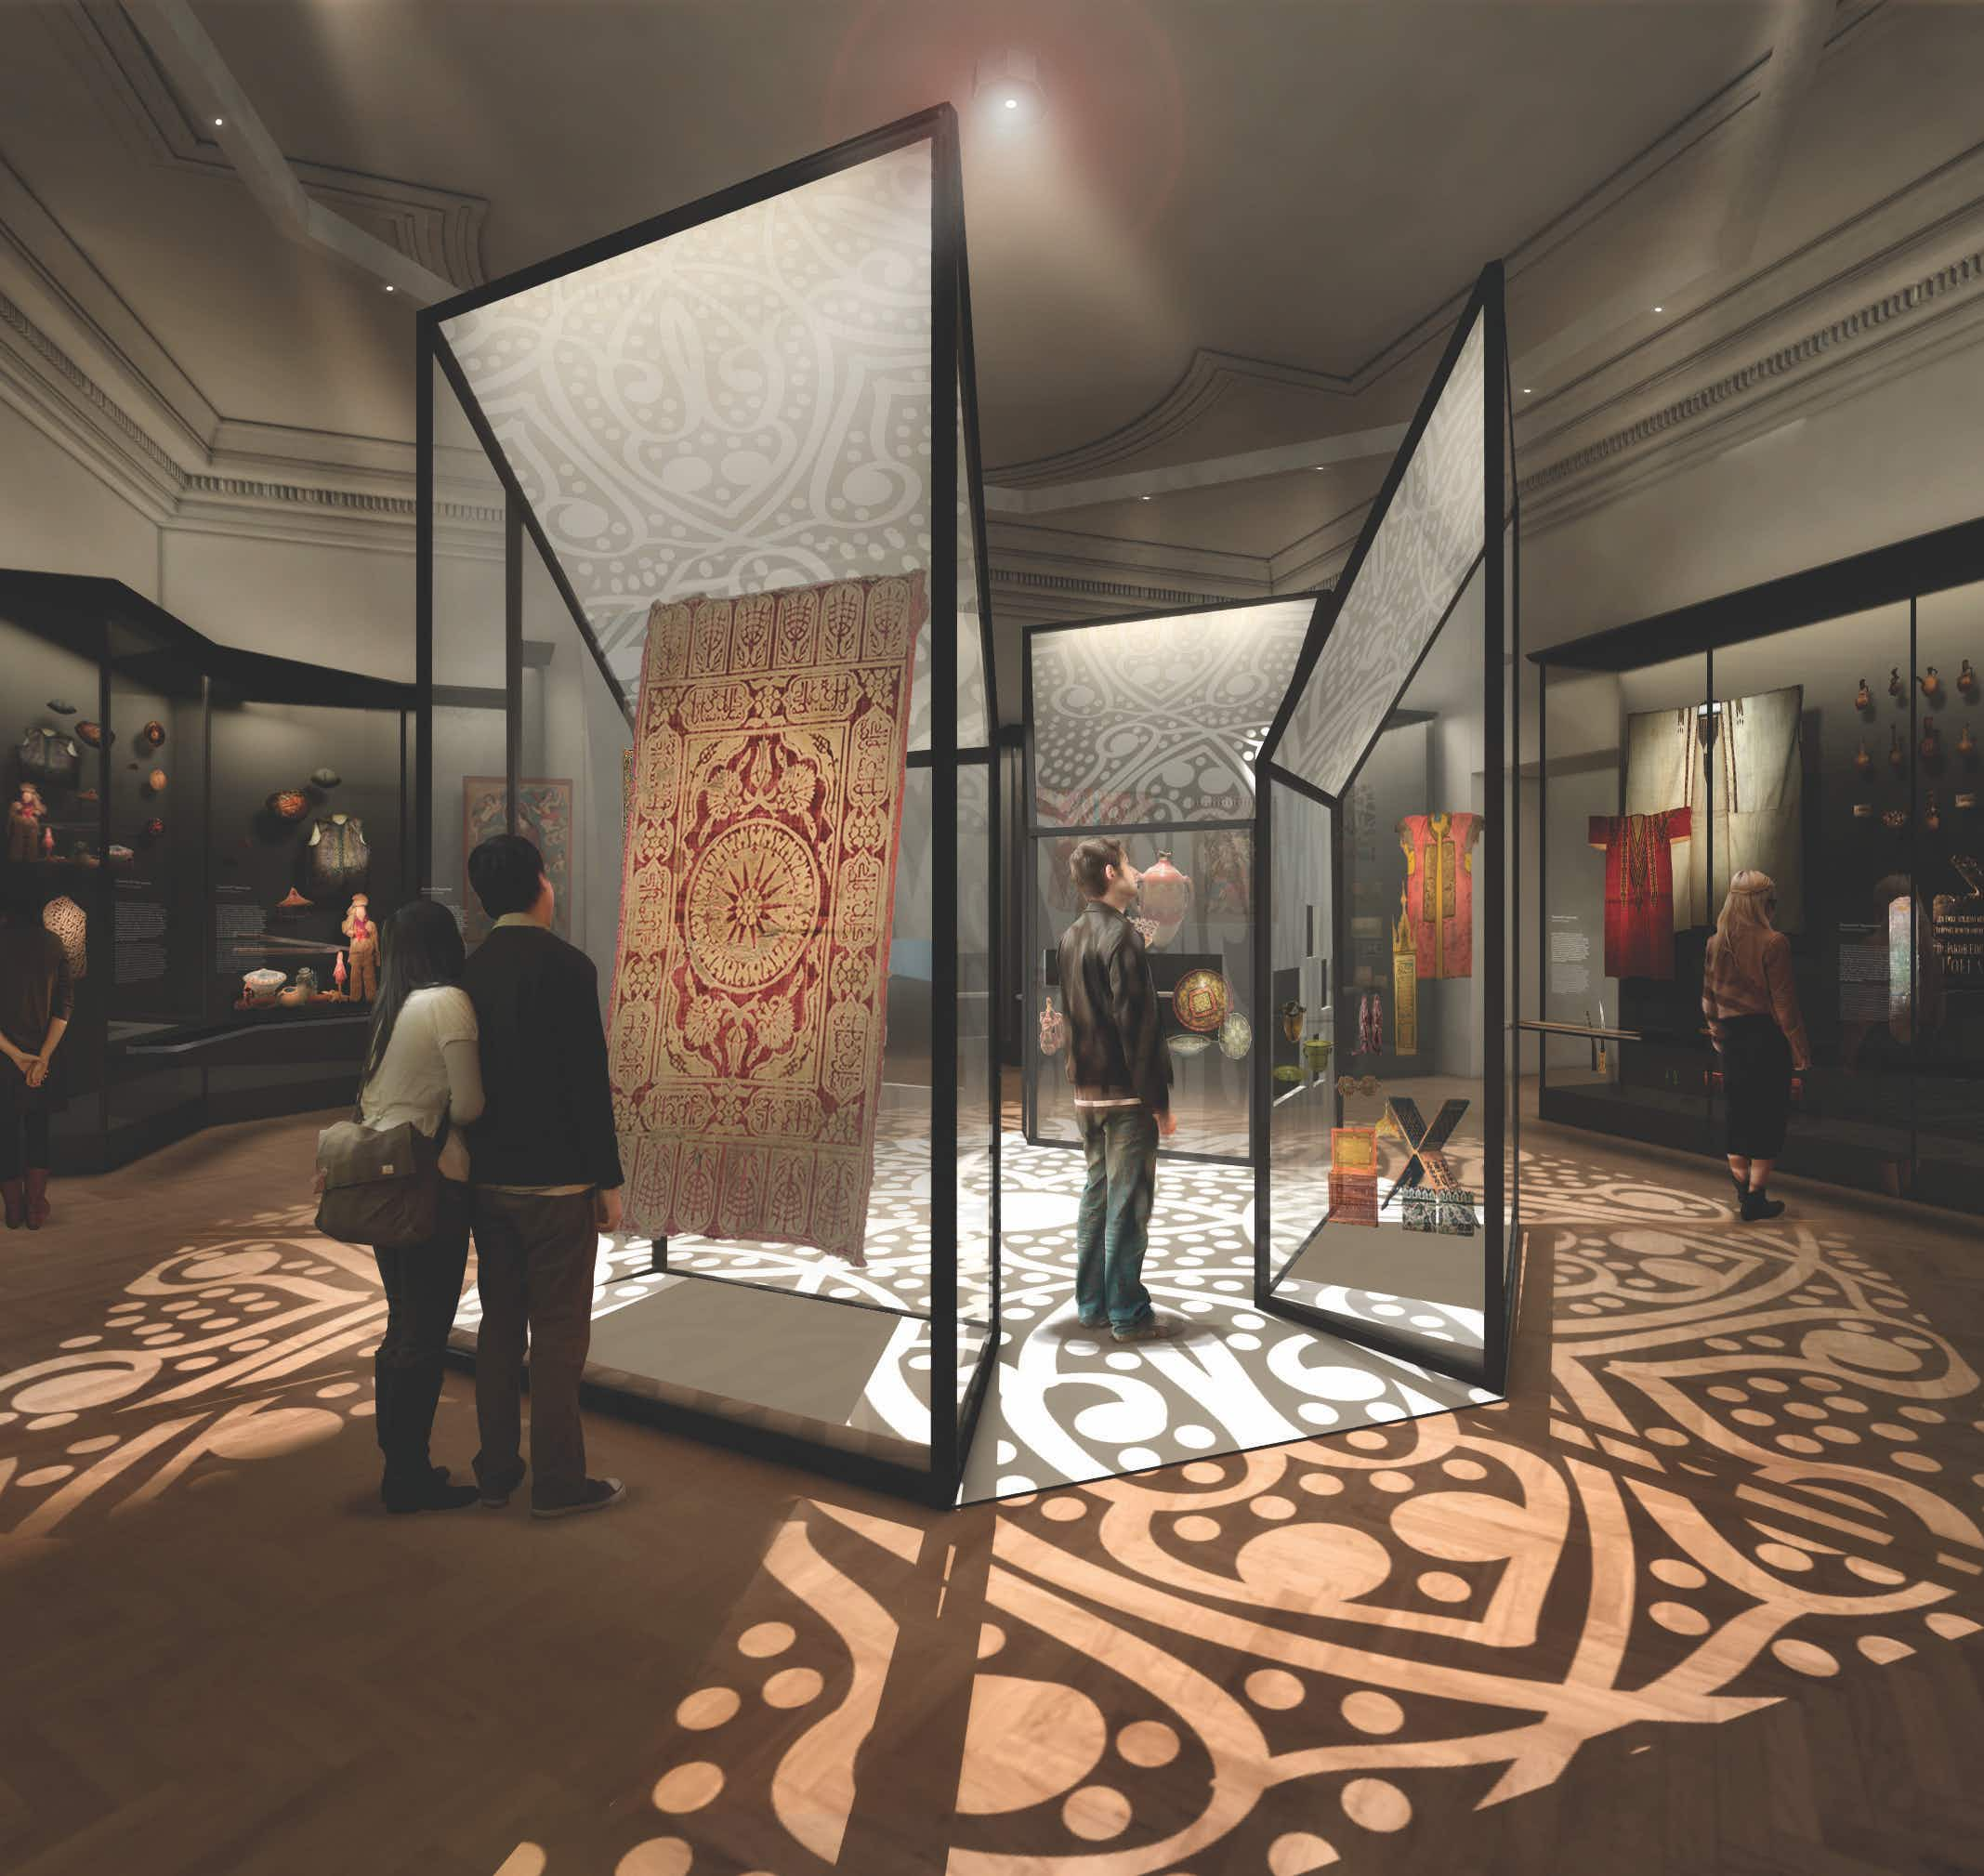 Austria's Weltmuseum is reopening with cultural treasures from five continents